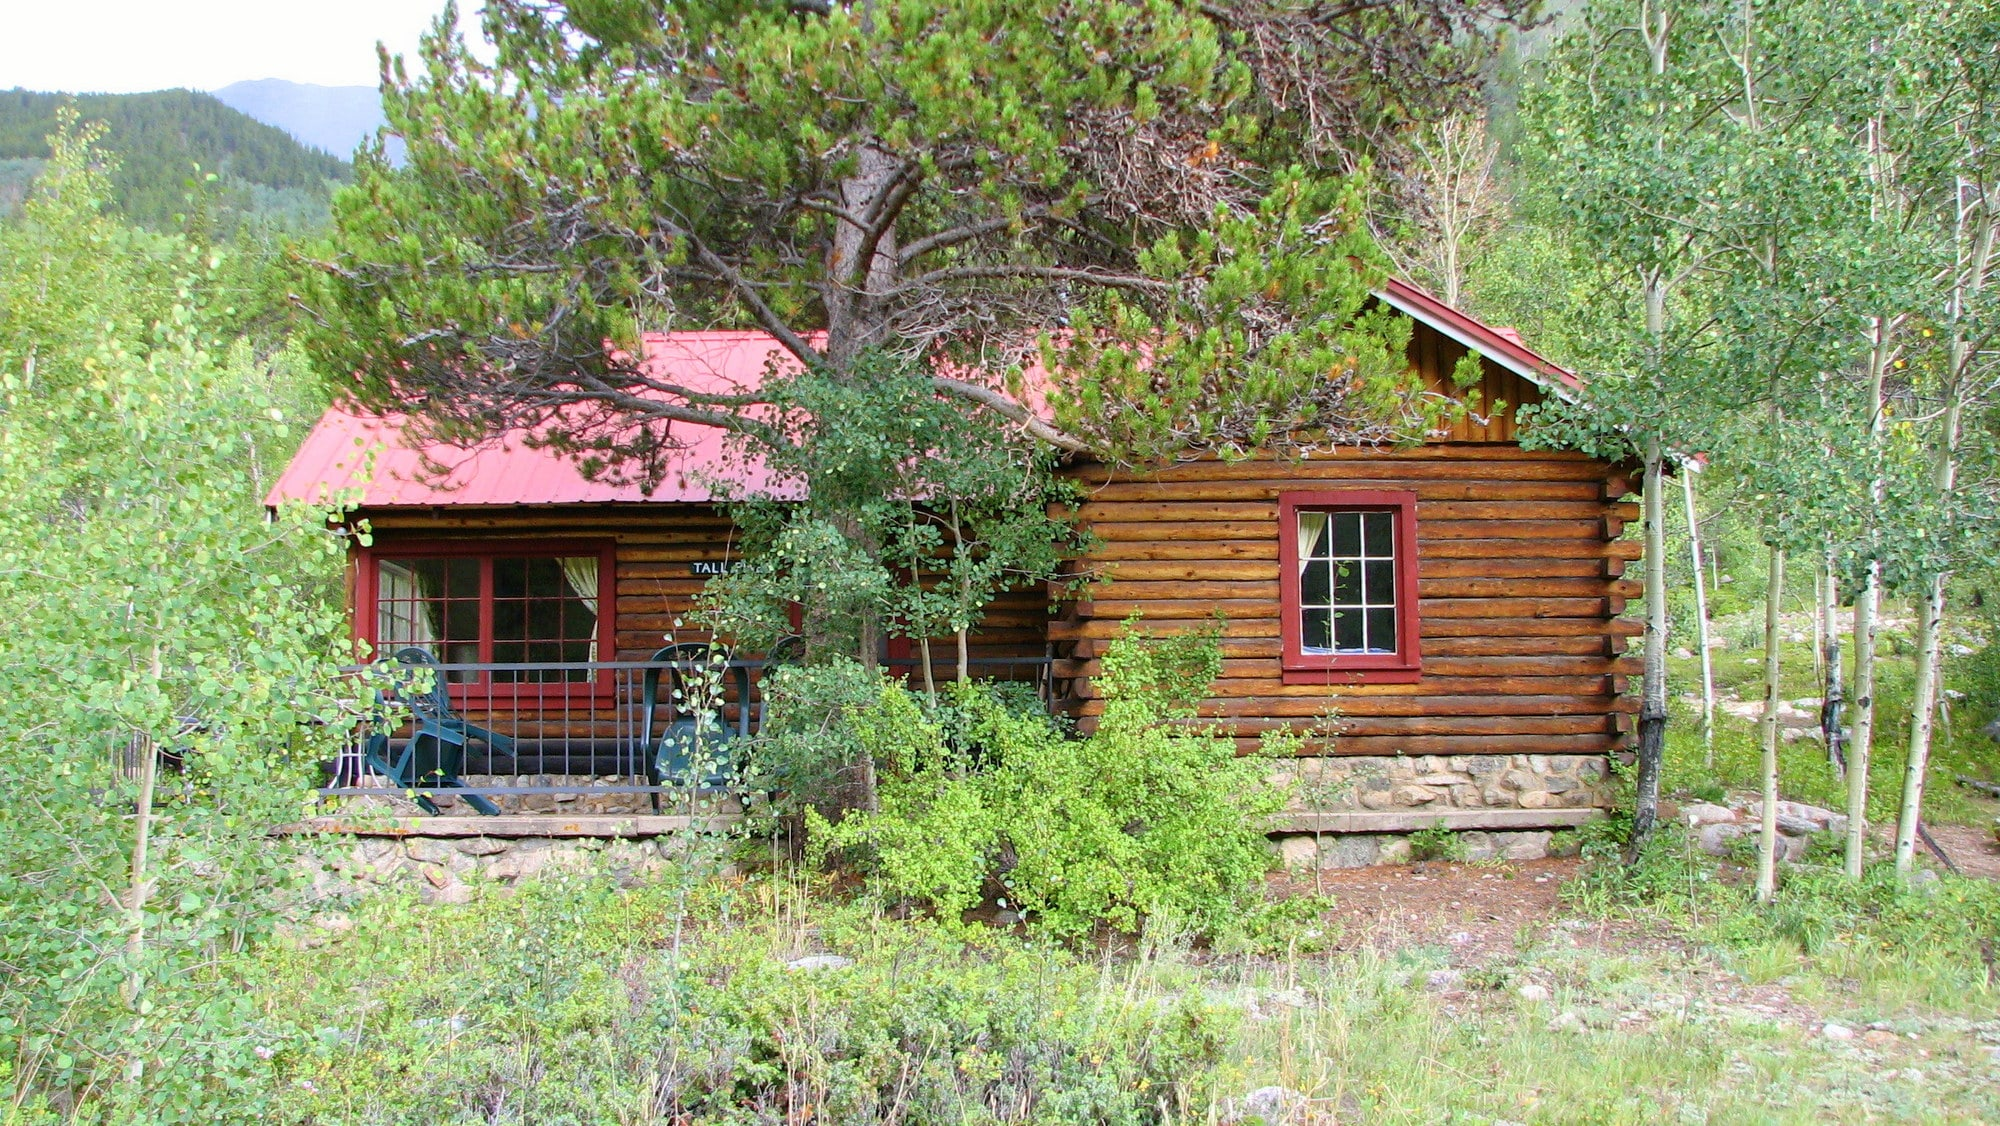 Welcome to the Tall Pine Cabin at Mount Elbert Lodge